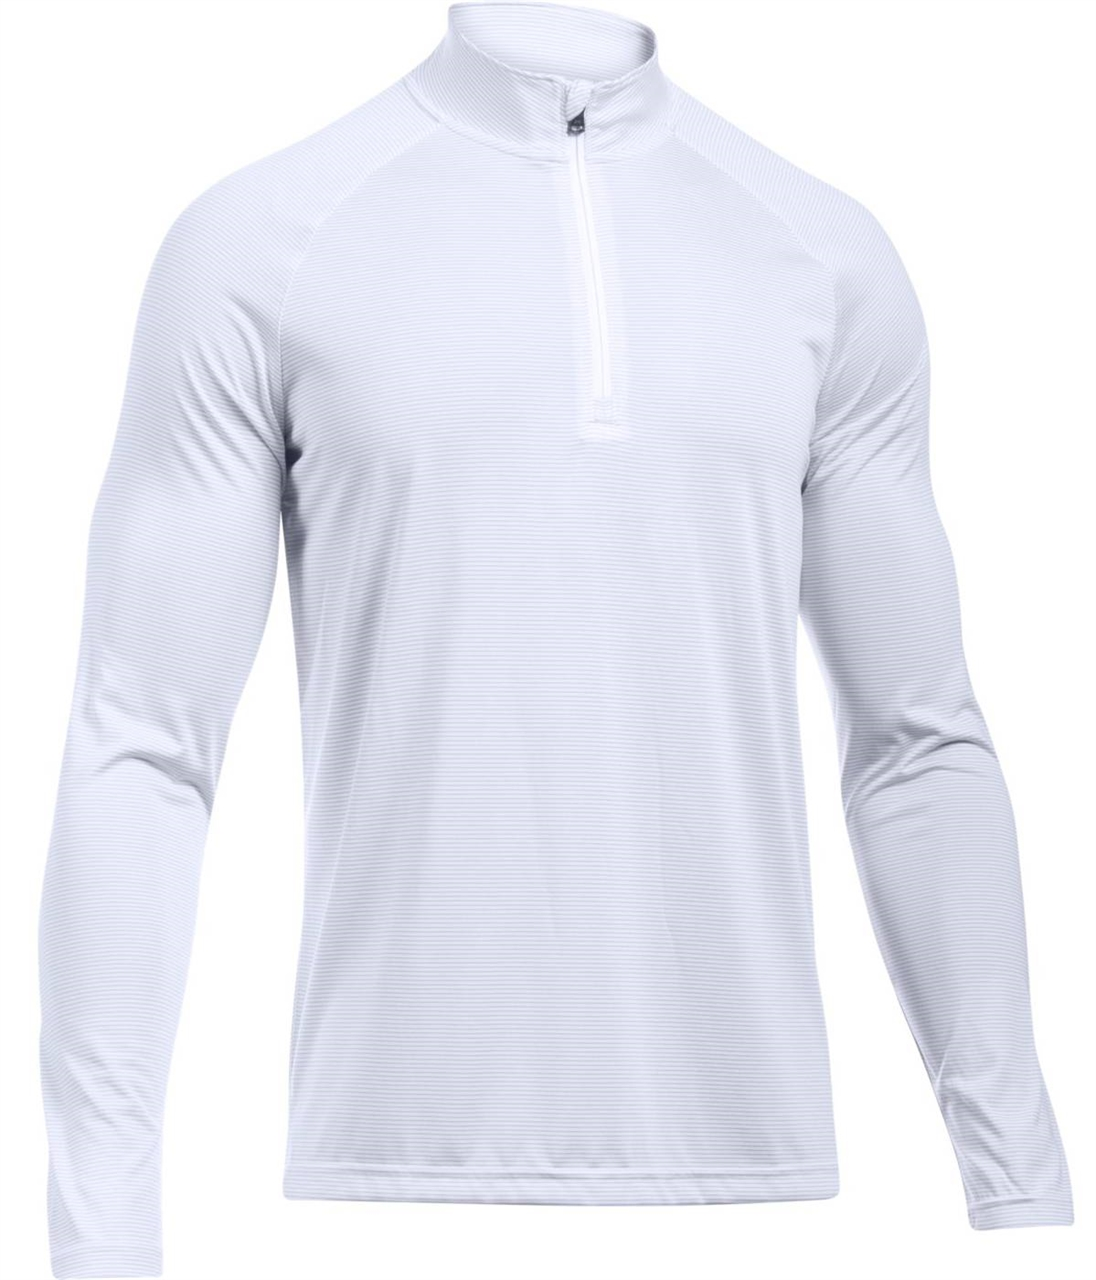 Picture of Under Armour Men's UA Corp Stripe Quarter-Zip